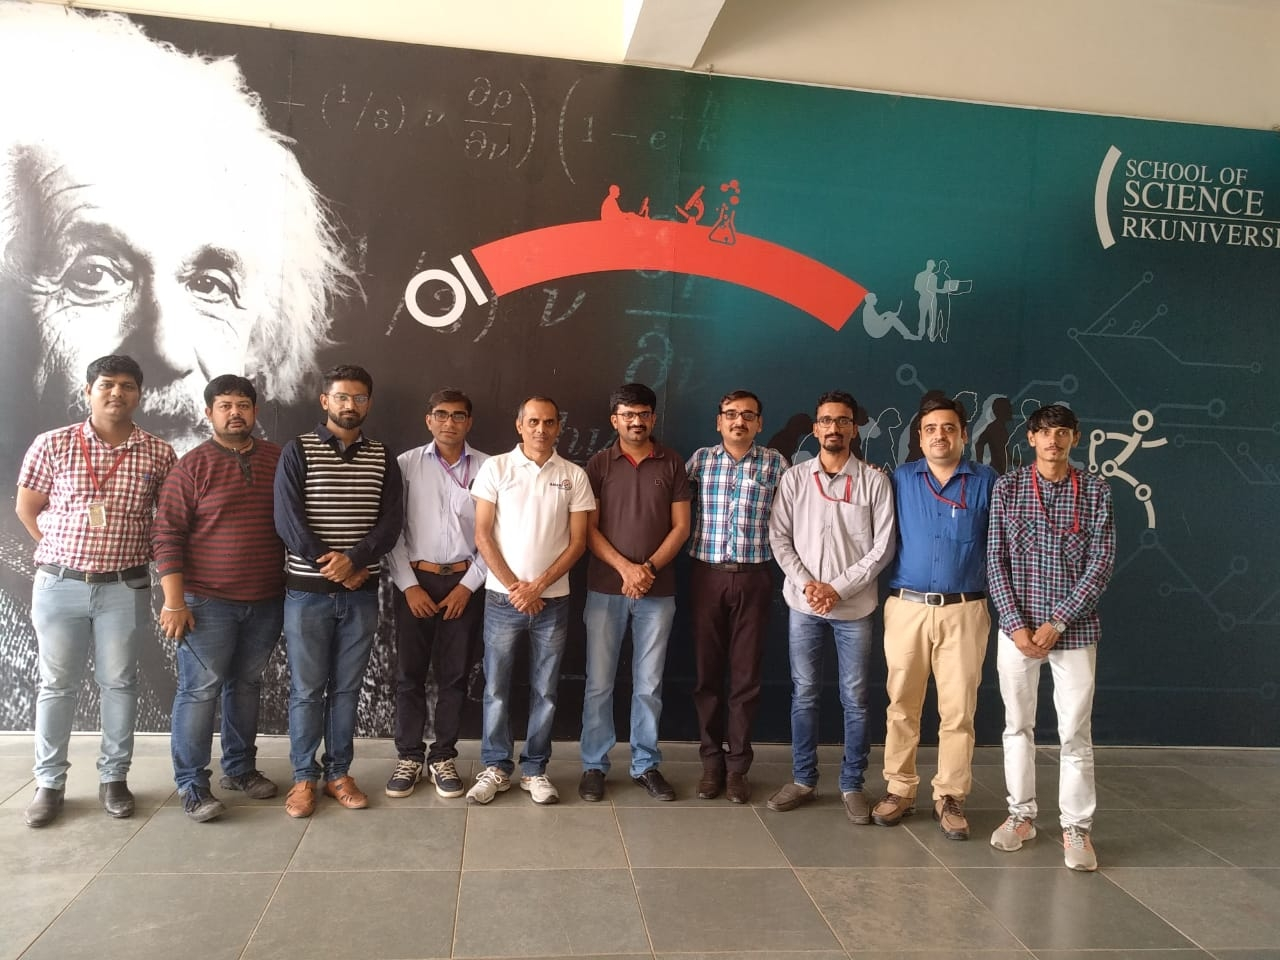 010 With Senior Faculties and Admin.jpg